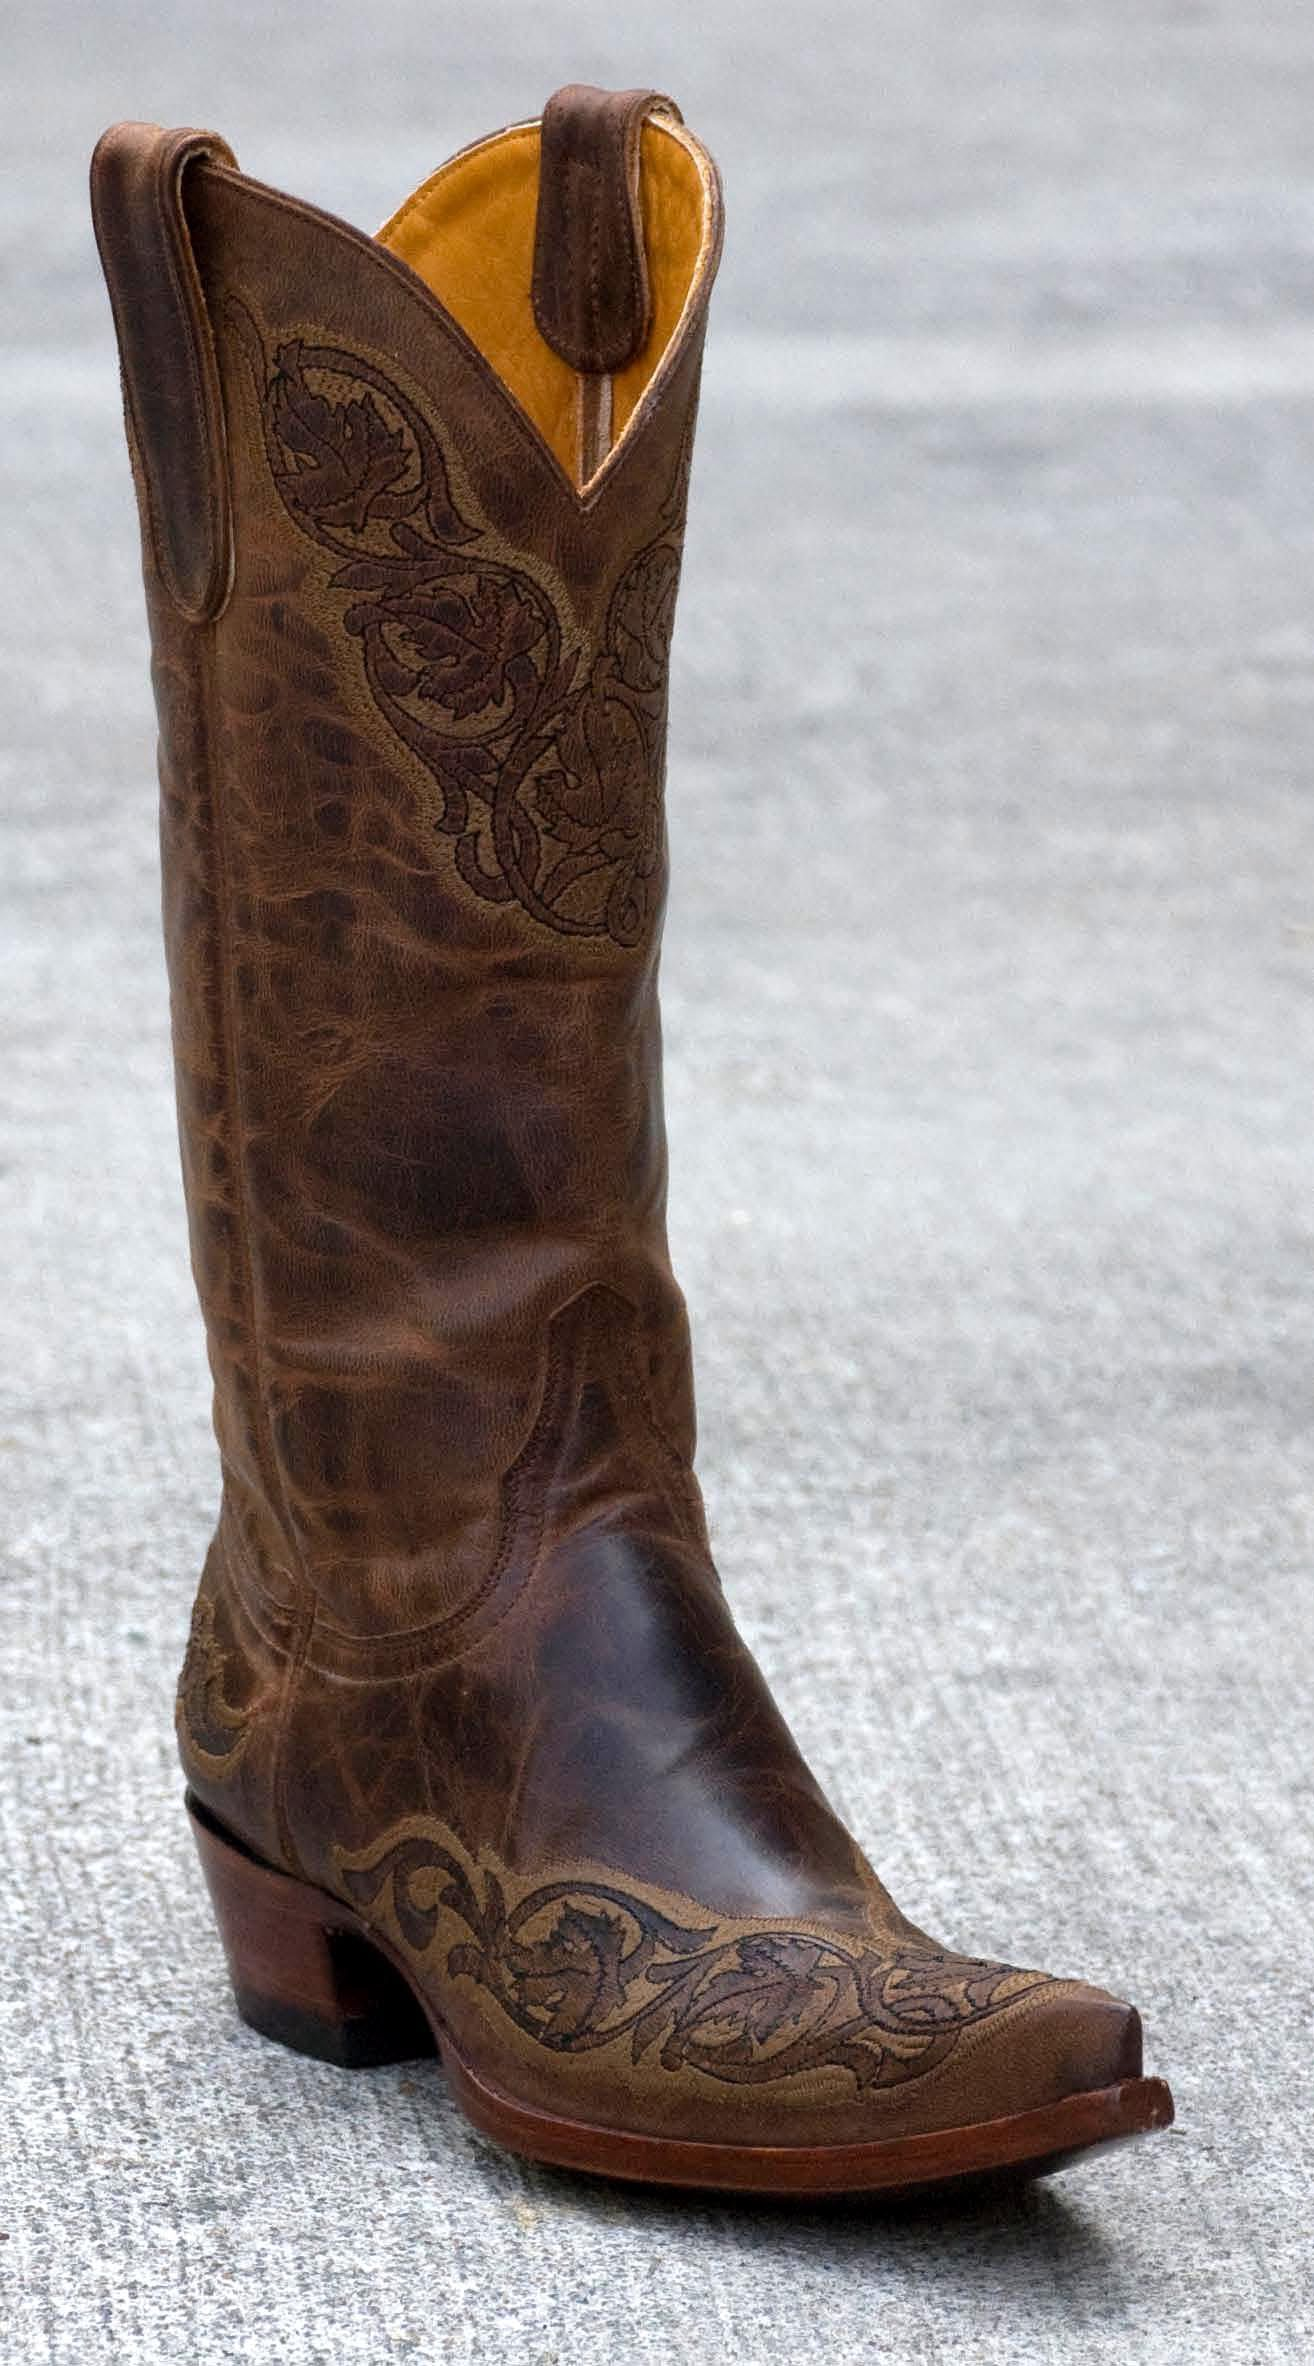 7061eea57e2 Pretty. #cowgirlboots #cowboyboots #country #countrygirlFor more ...